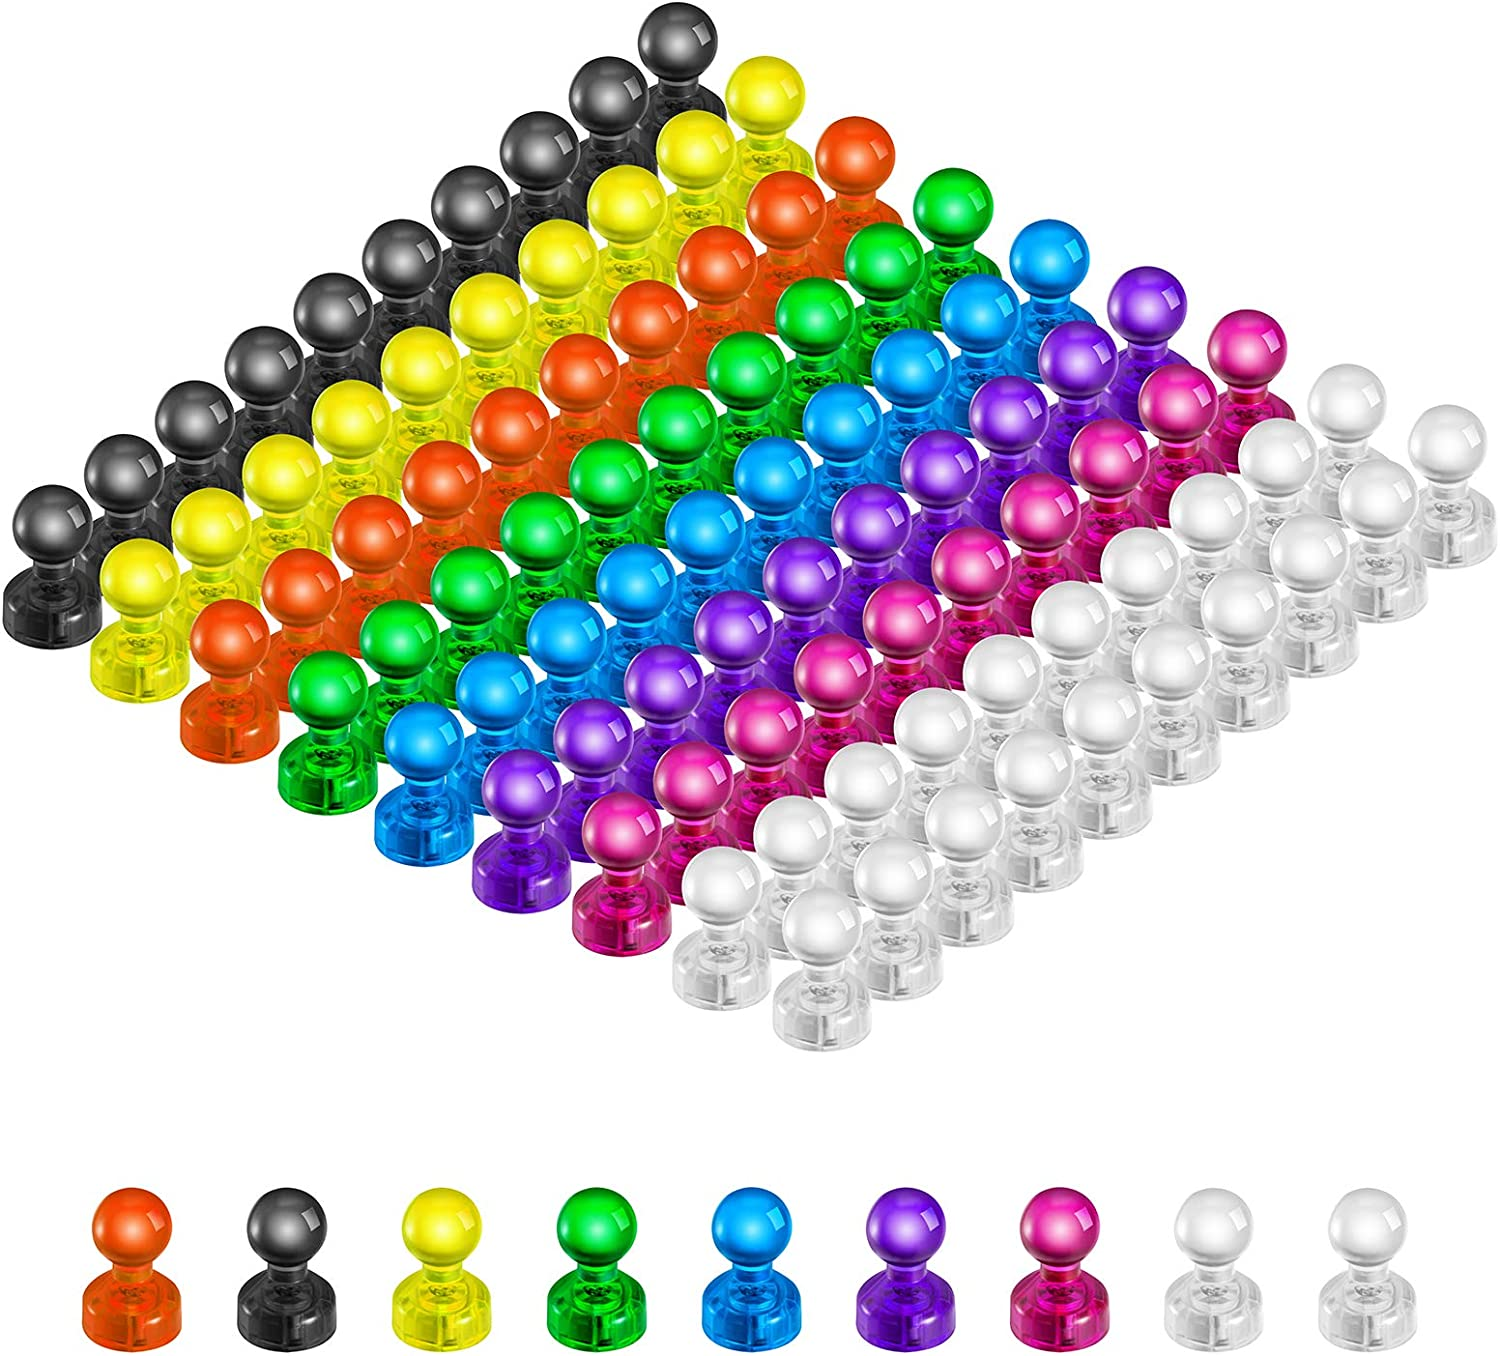 90 PCS Colorful Push Pin Magnets, Office Magnets,8 Assorted Color Strong Magnetic Push Pins, Perfect to use as Kitchen Home and School Classroom Magnets, Map Magnets,Whiteboard Magnets